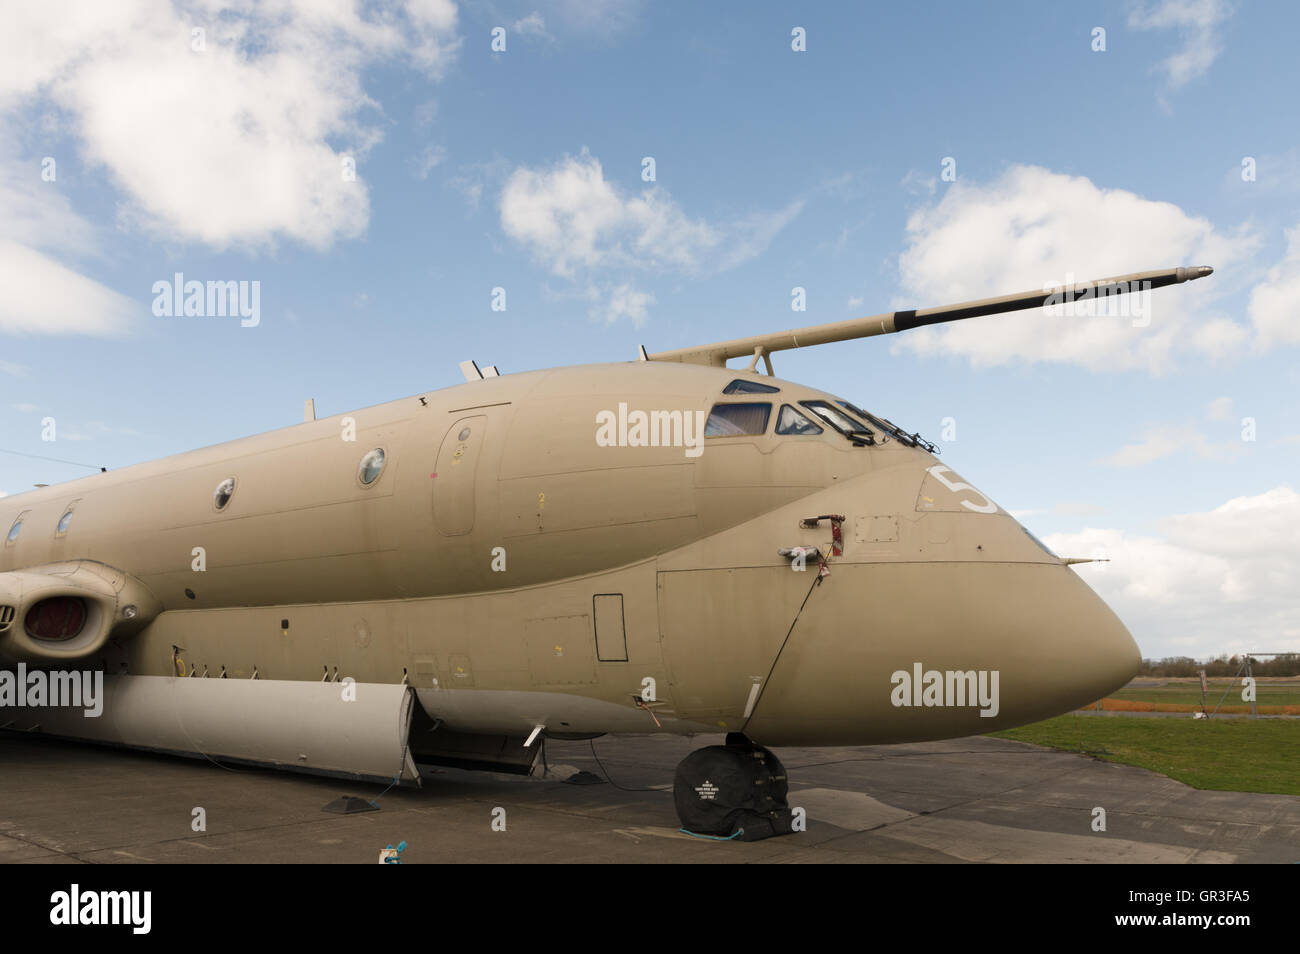 The Hawker Siddeley Nimrod was a maritime patrol aircraft developed and operated by the United Kingdom - Stock Image